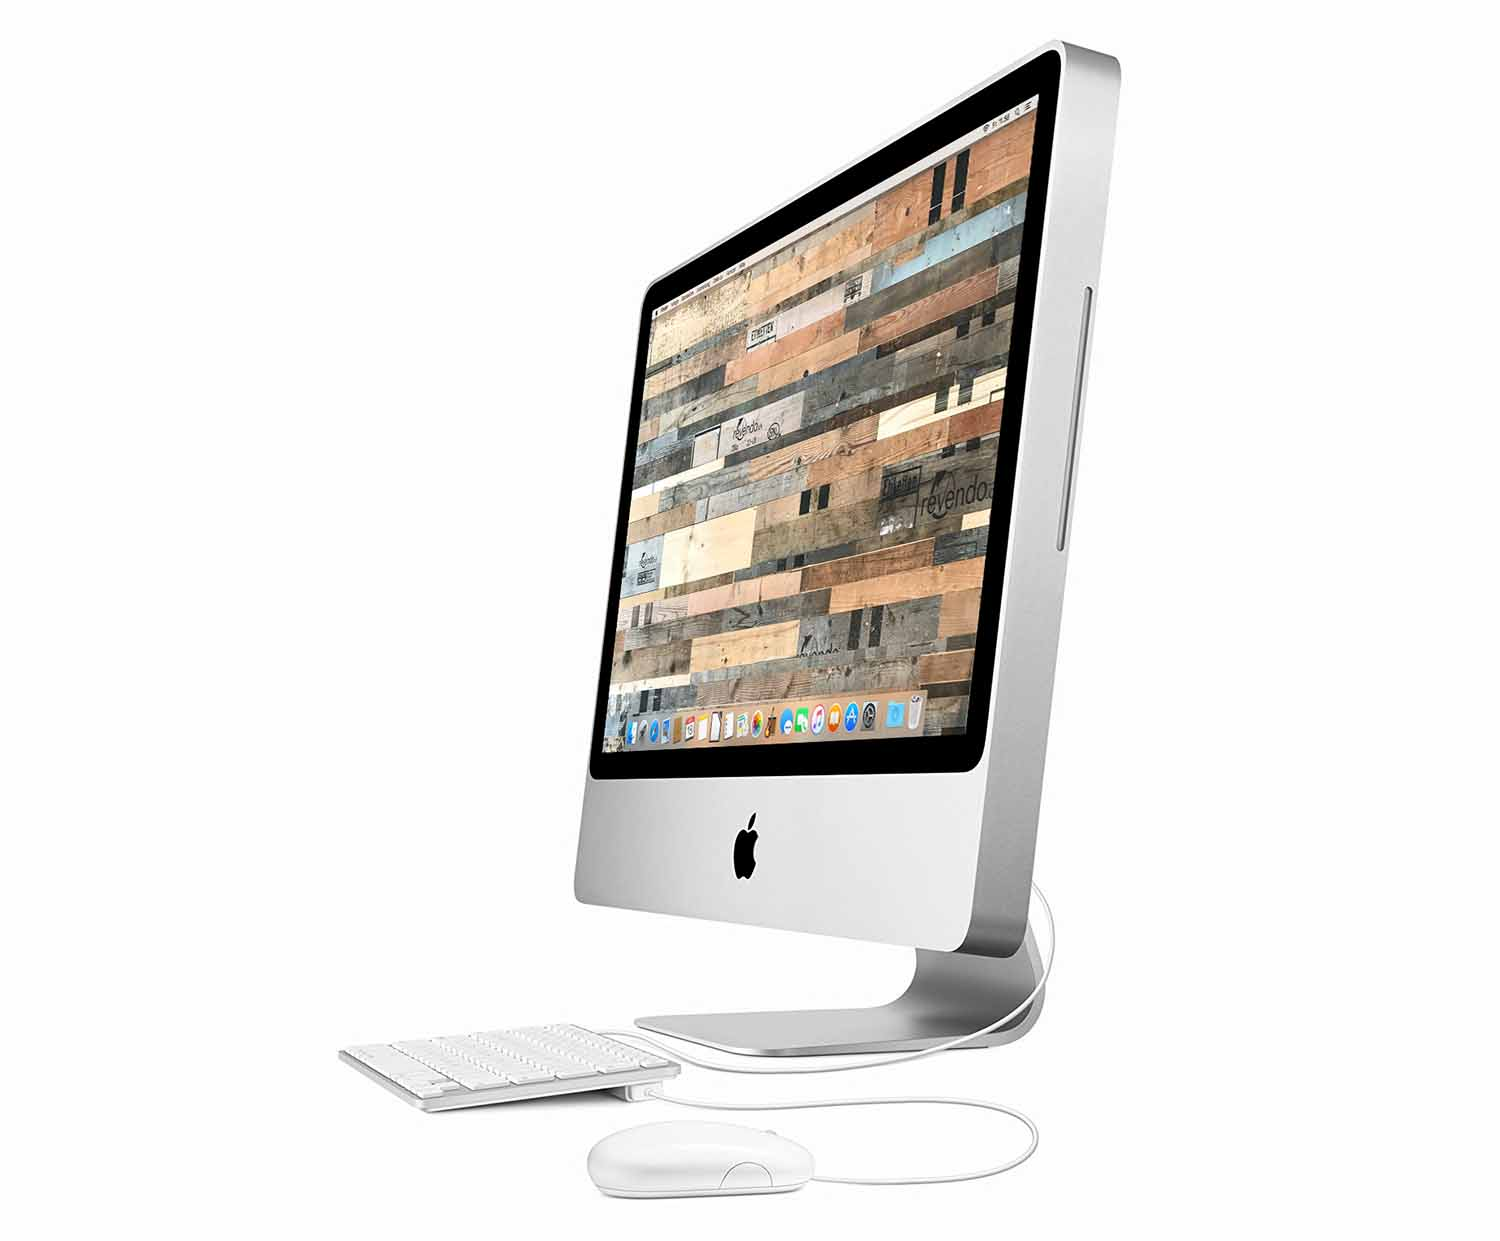 imac 24 zoll ghz core 2 duo. Black Bedroom Furniture Sets. Home Design Ideas